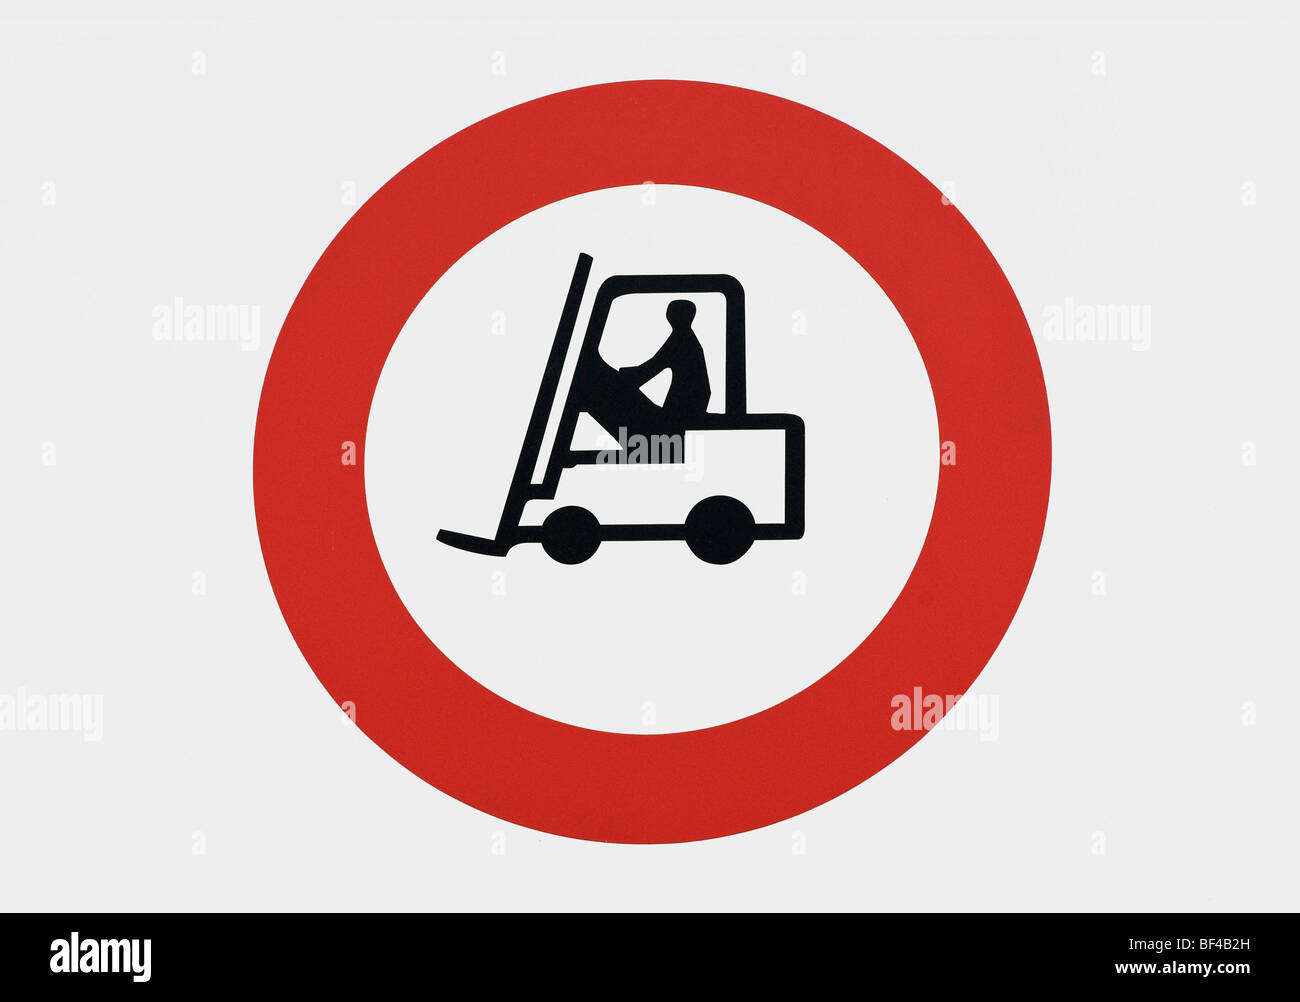 Warning sign, caution forklift truck traffic - Stock Image